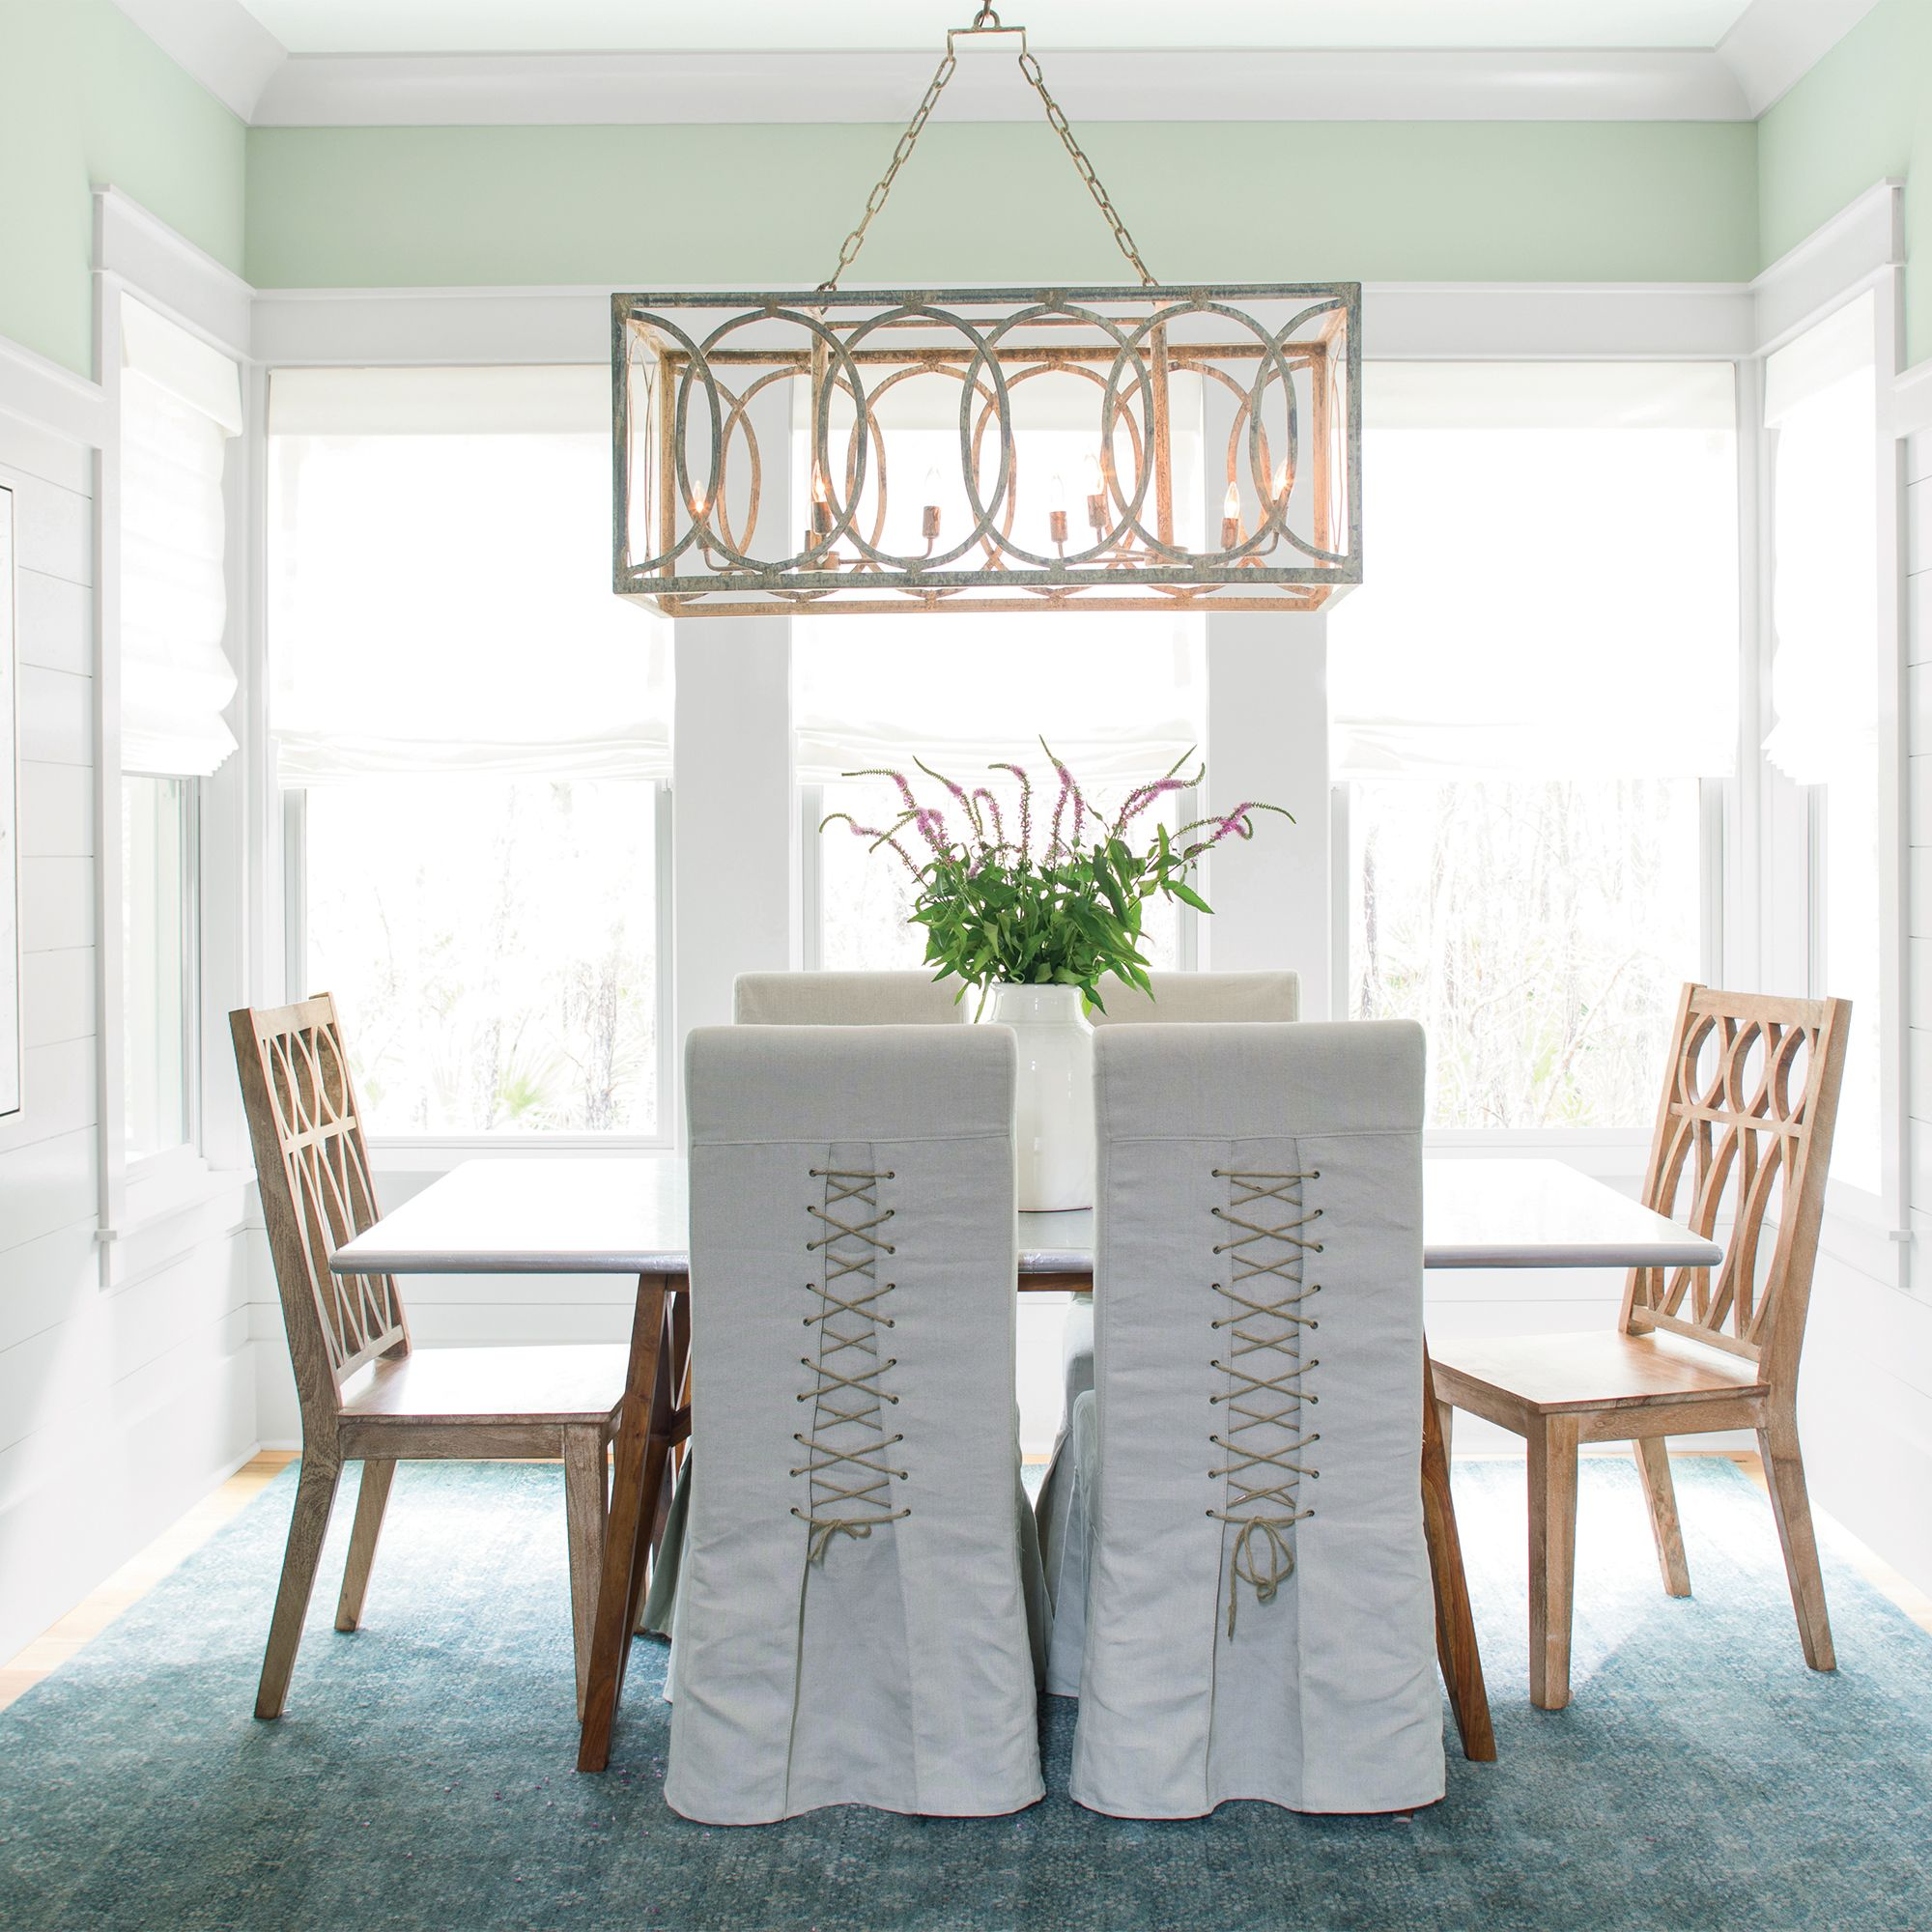 Pale Green and White Dining Room